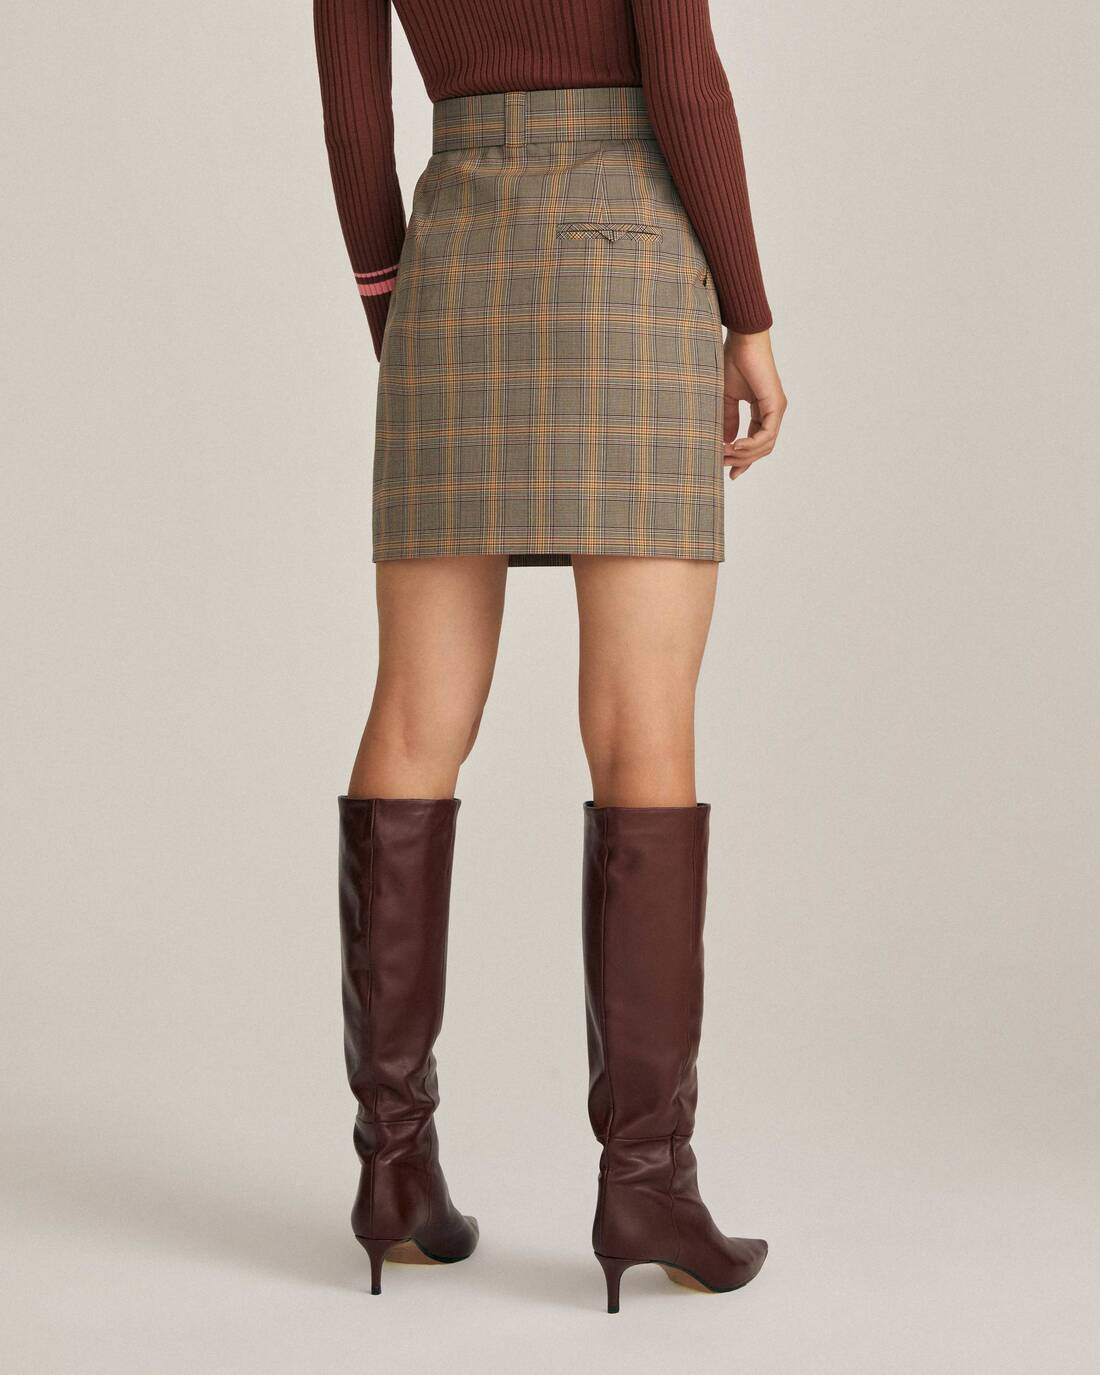 Costume mini skirt with a belt